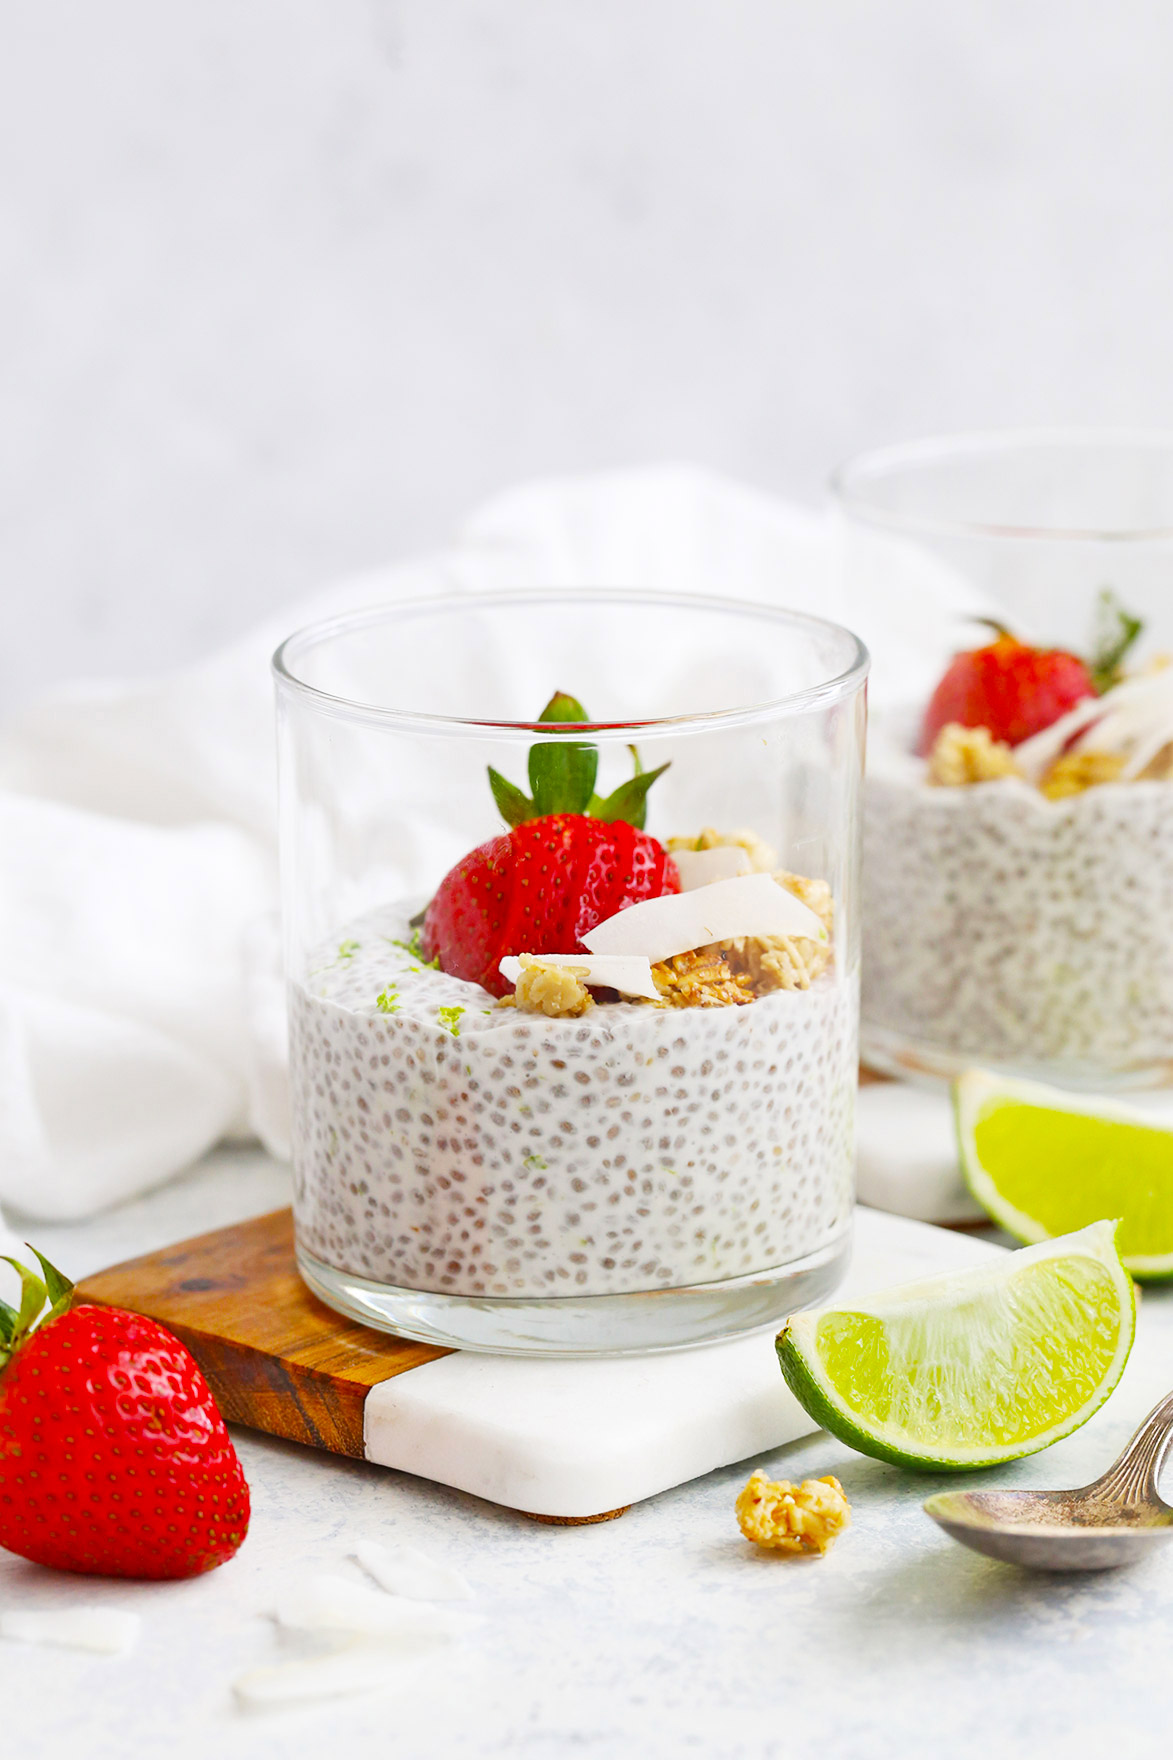 Coconut Lime Chia Pudding from One Lovely Life